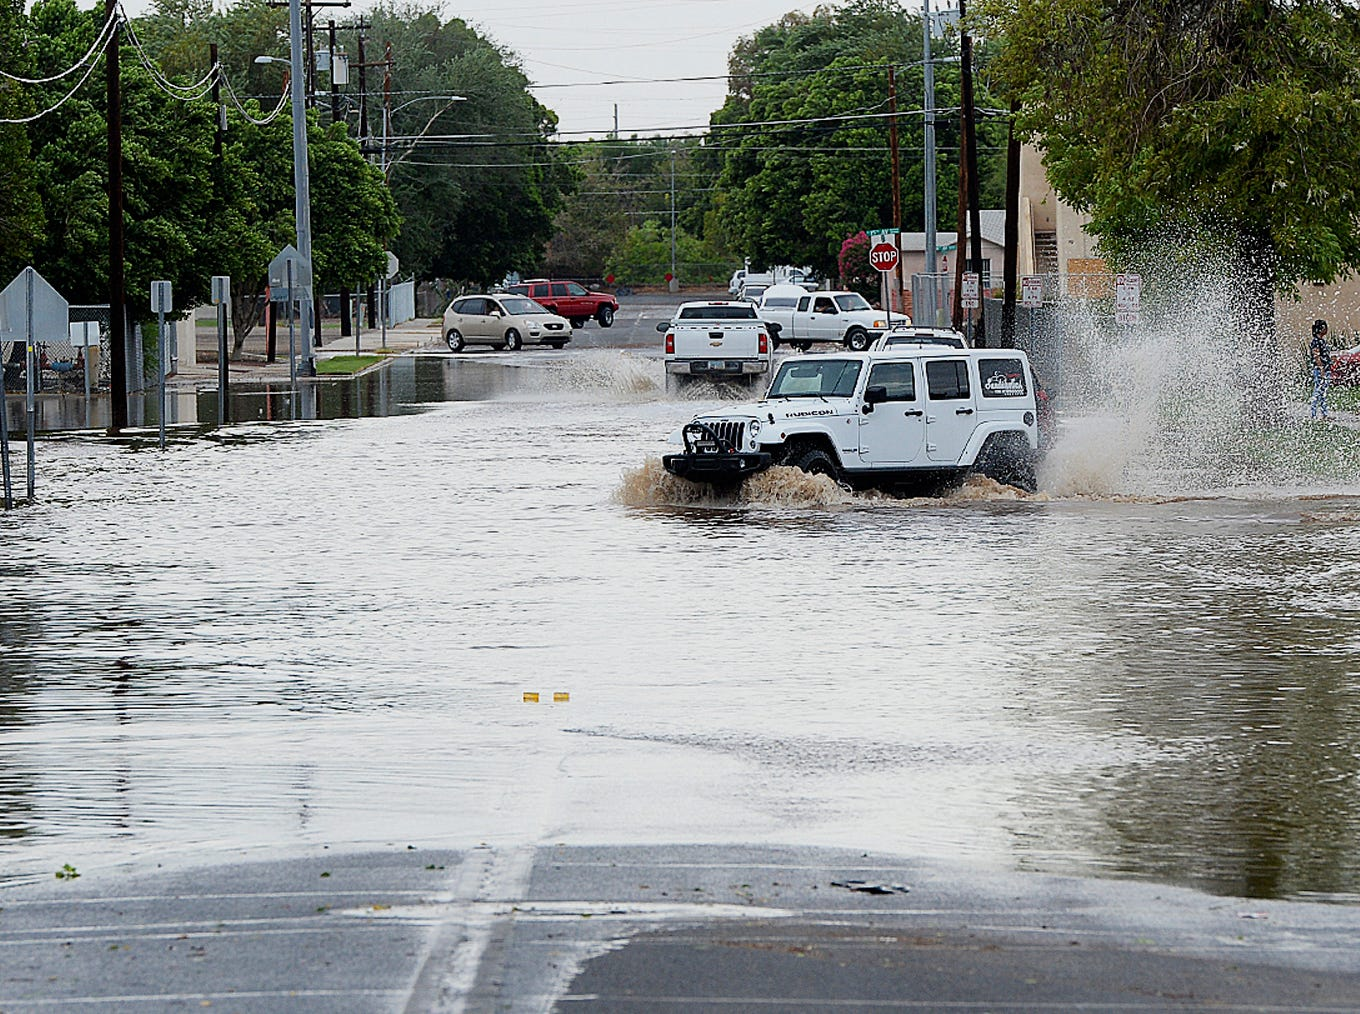 Vehicles navigate a flooded 5th Street in Yuma, on Sept. 30, 2018, after an early afternoon rain storm.